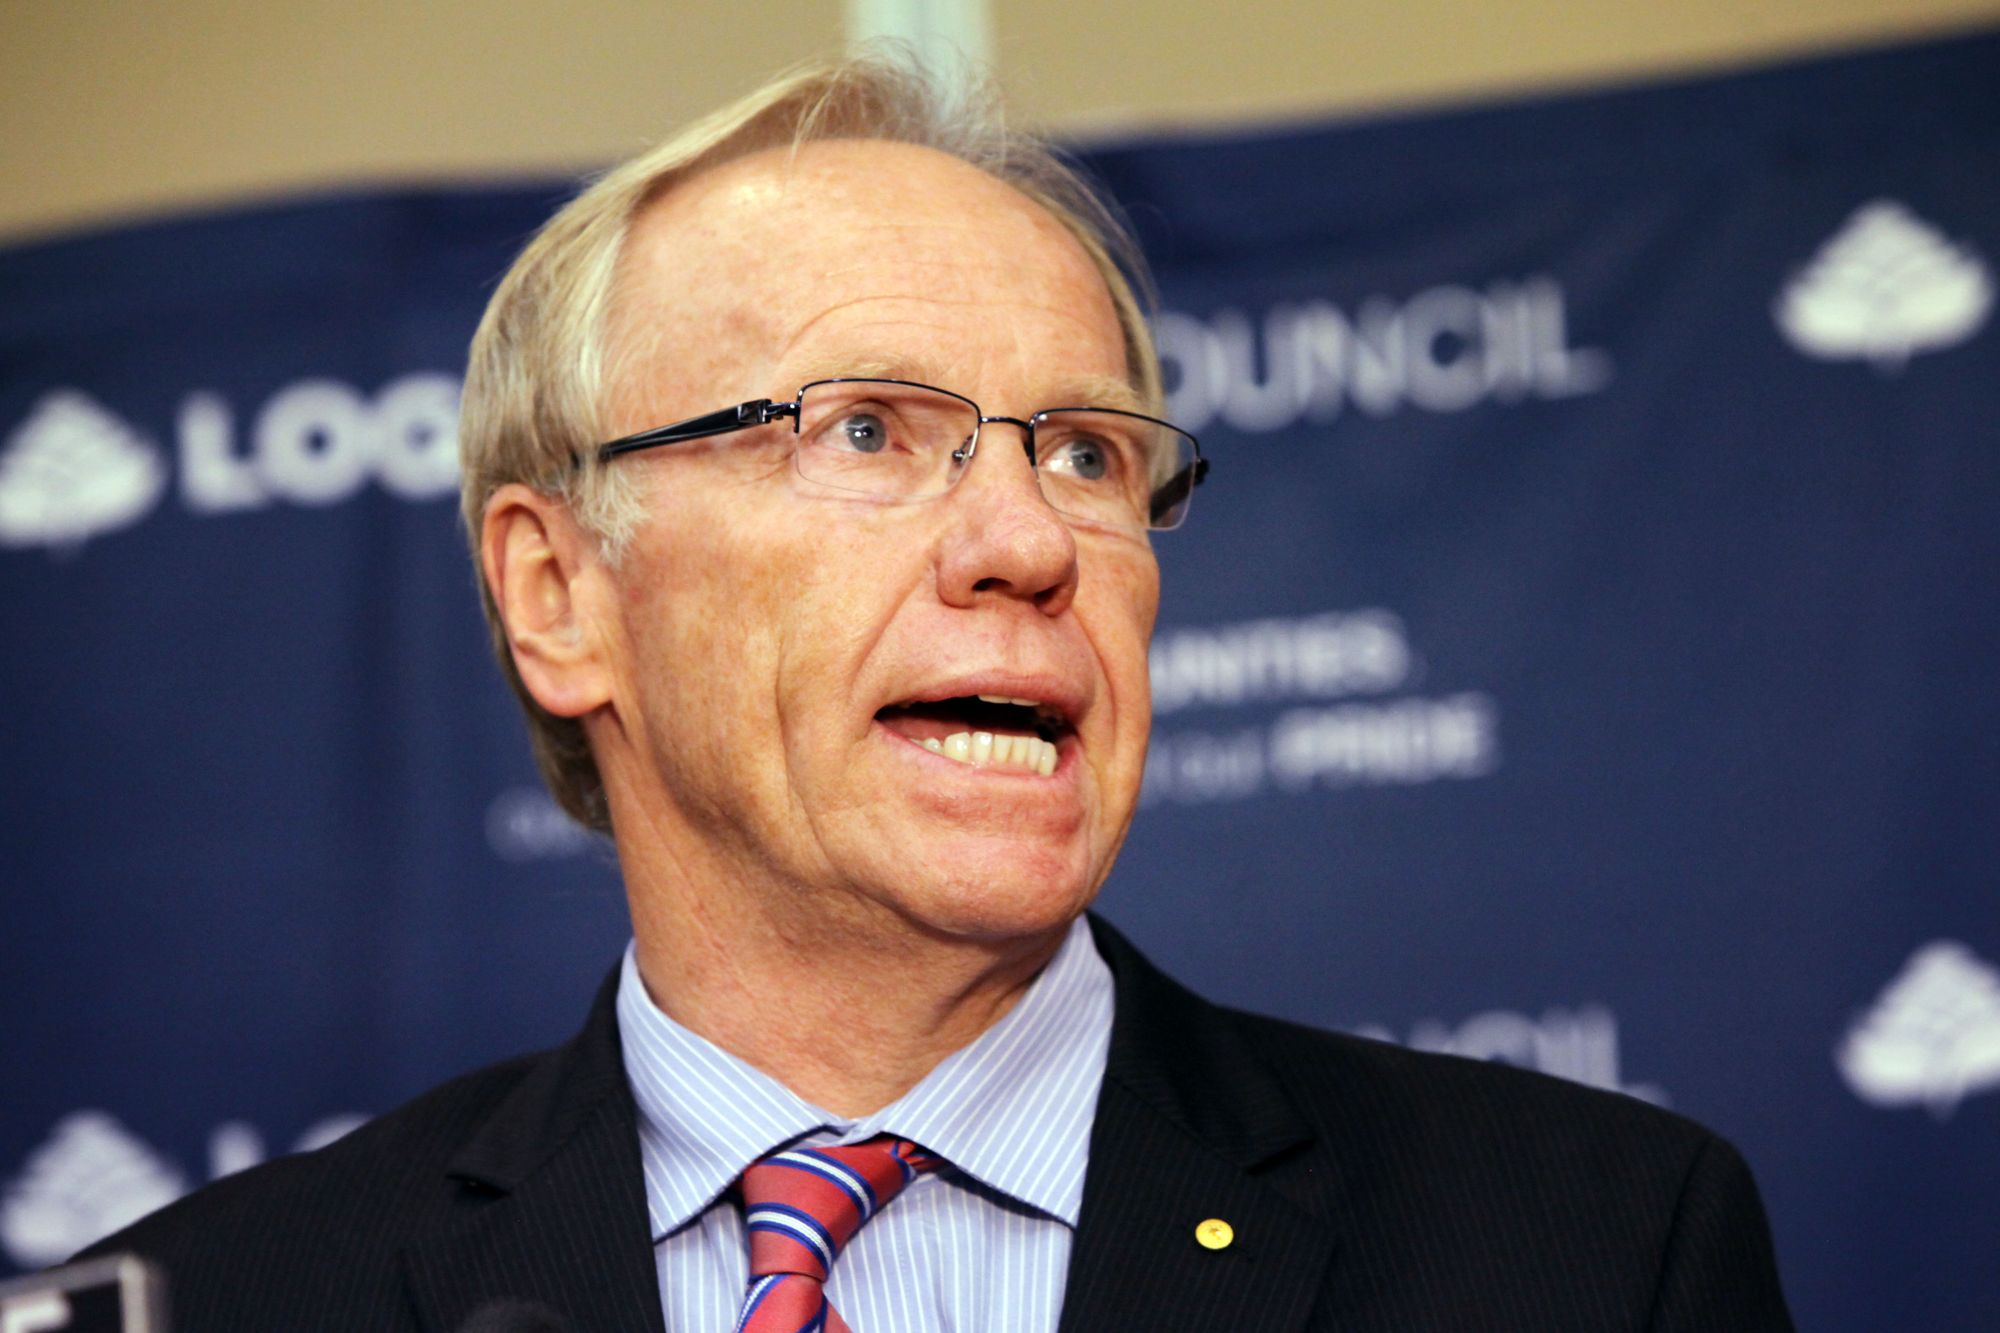 peter beattie - photo #23